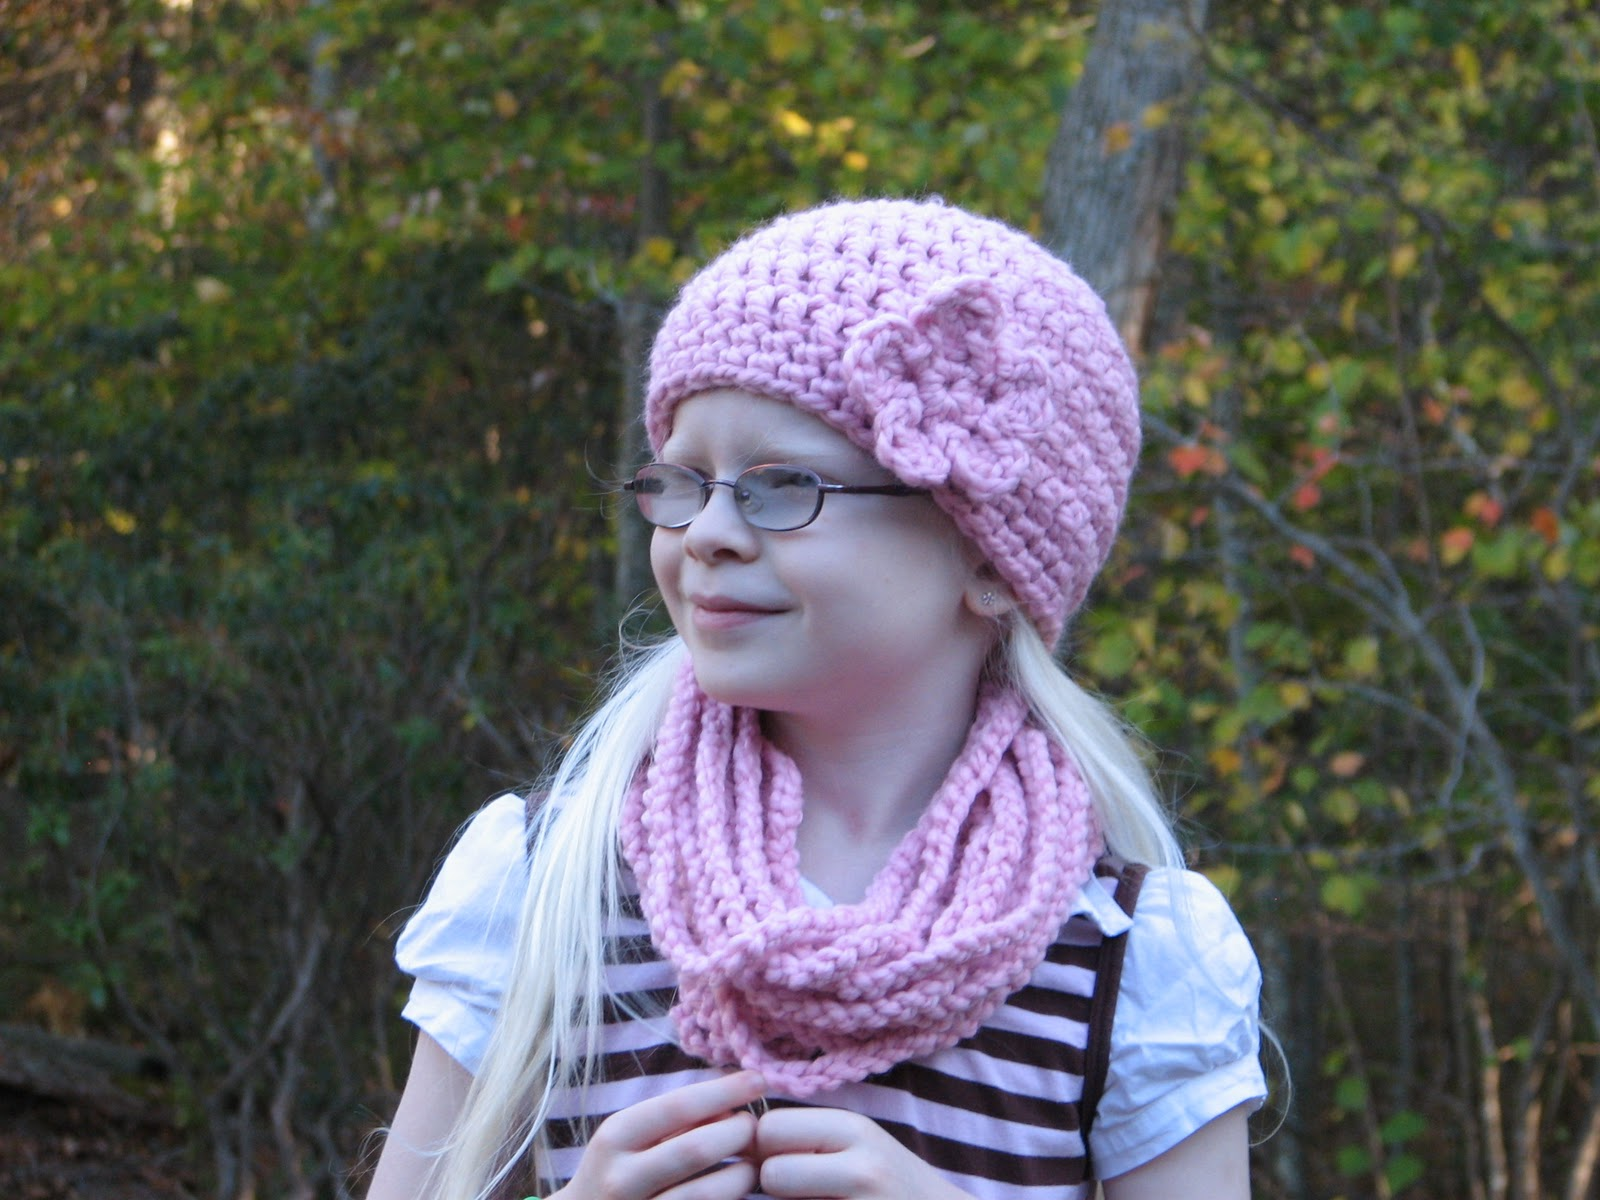 Free Patterns Crochet Winter Hats : Free Winter Hat Crochet Pattern - Ambassador Crochet ...